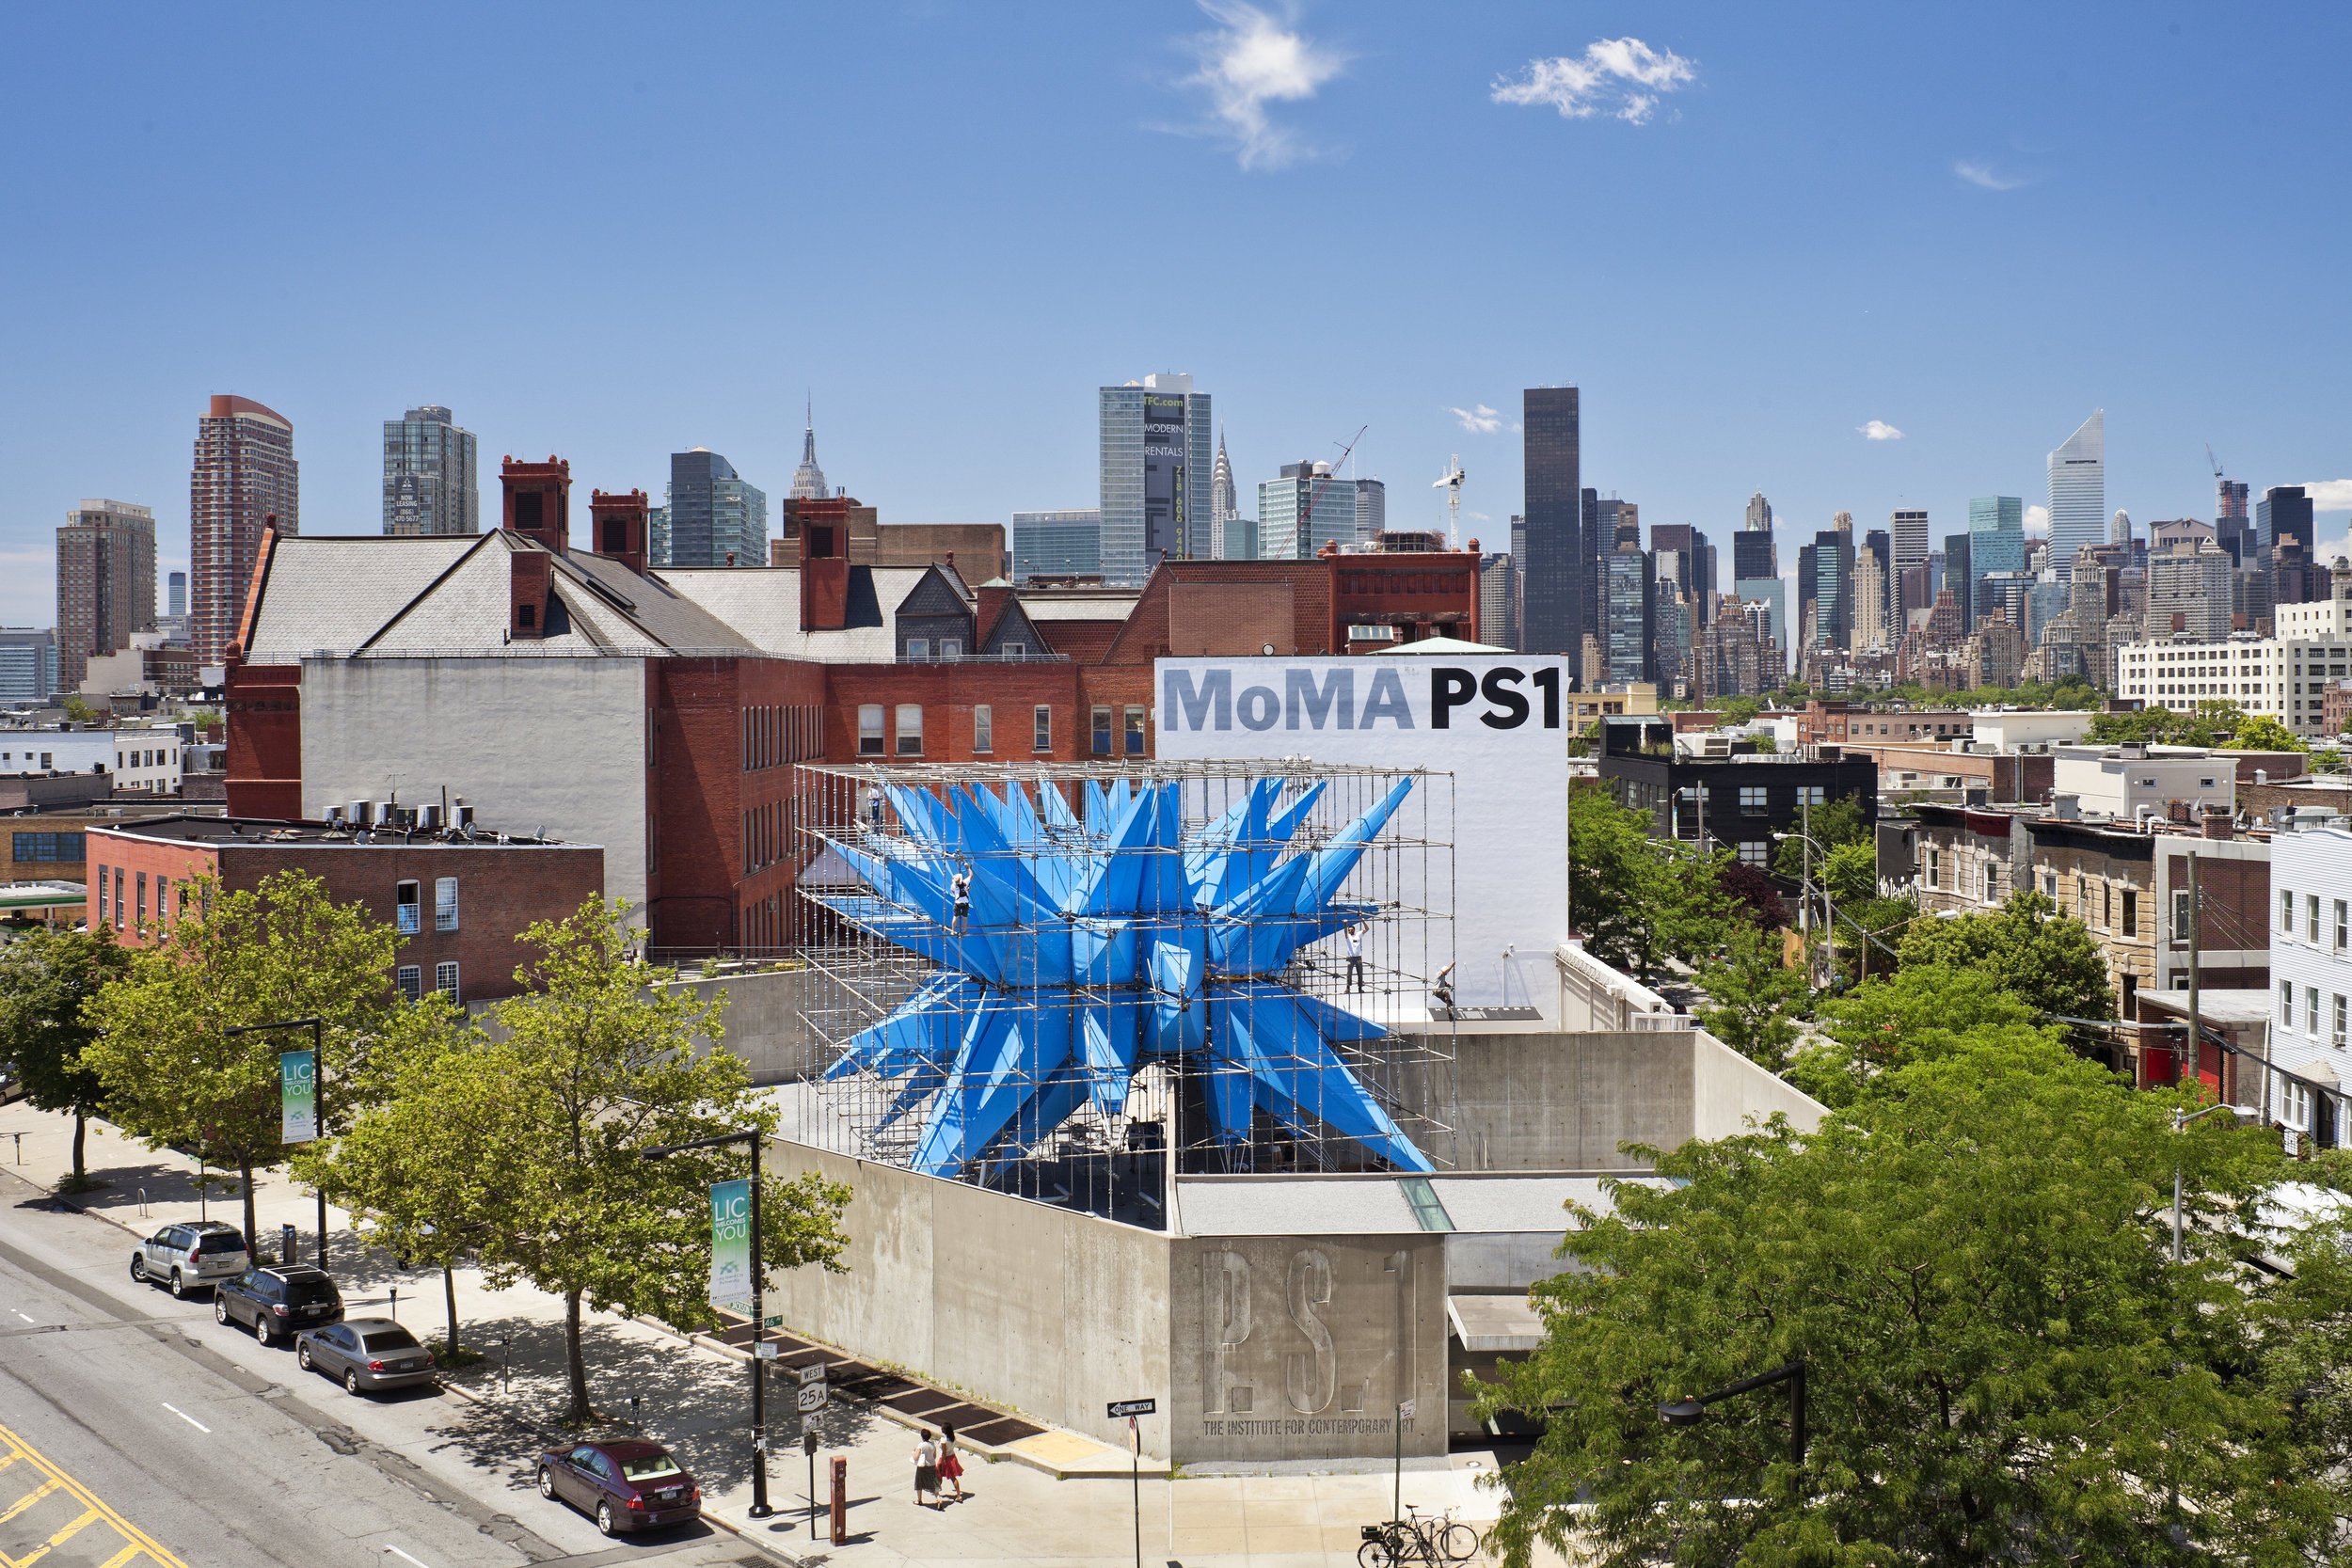 MoMA PS1 / Michael Moran